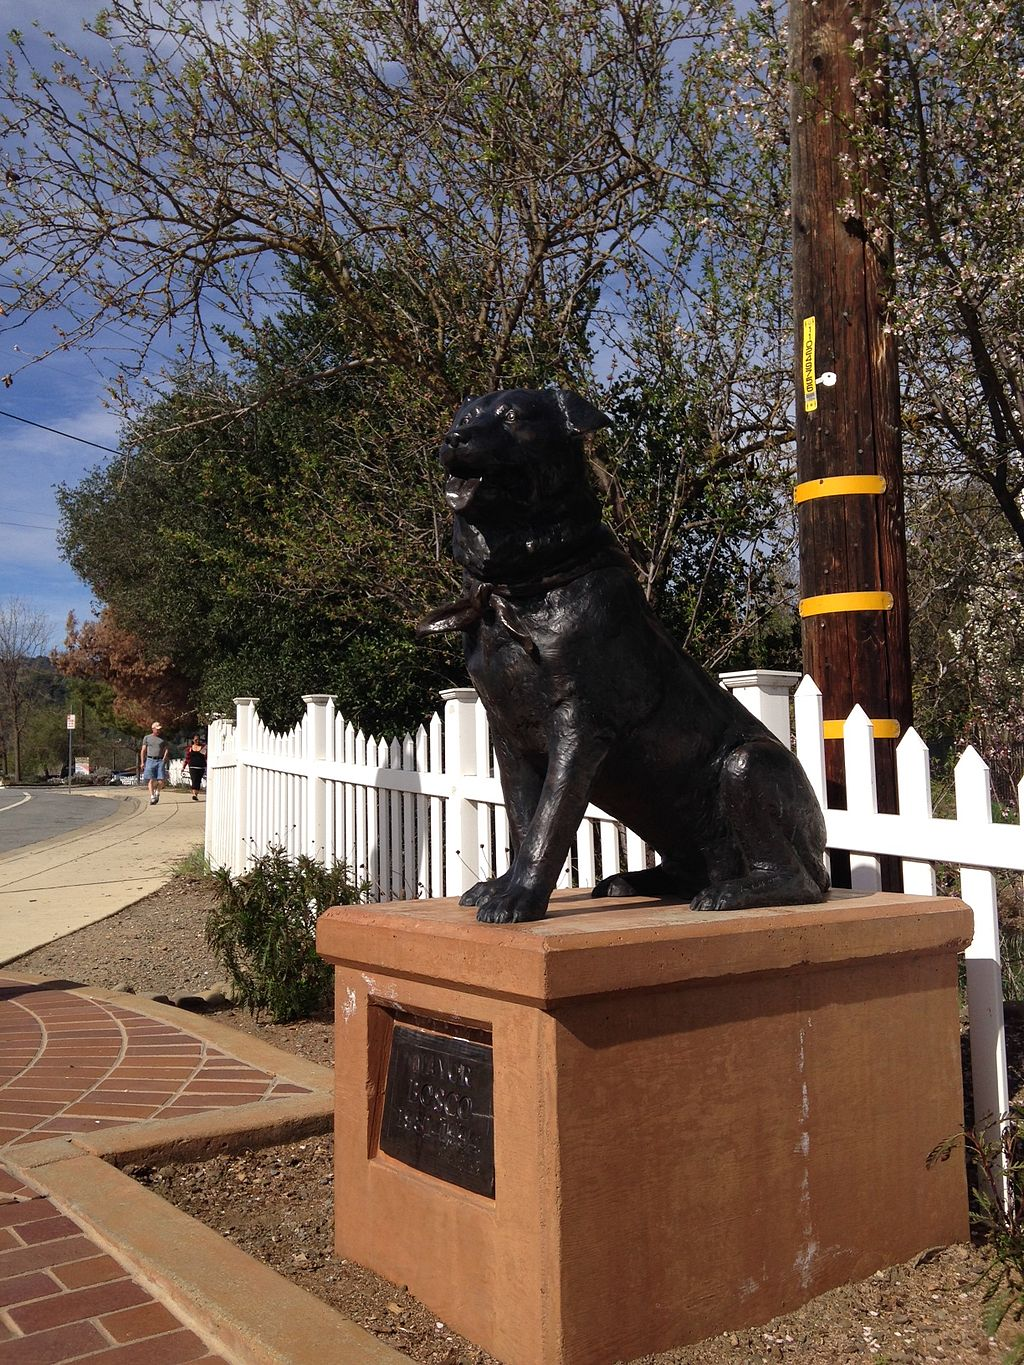 statue of Bosco in Sunol, California